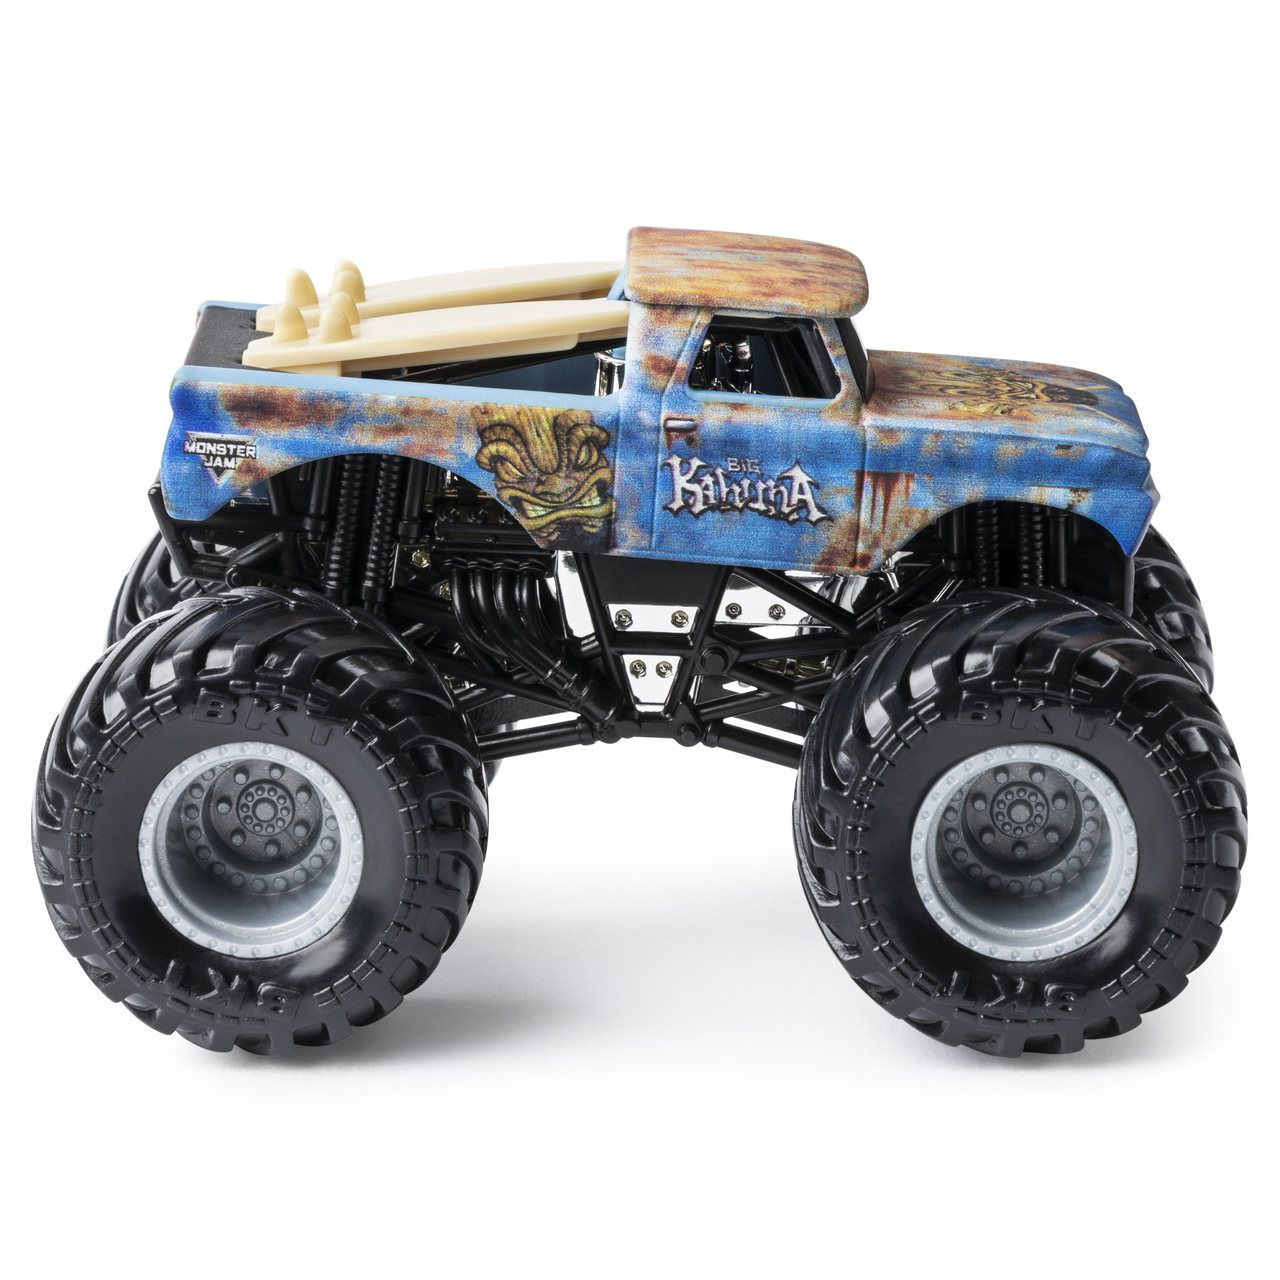 Monster Jam Truck - Big Kahuna - Escala 1:64 - Original